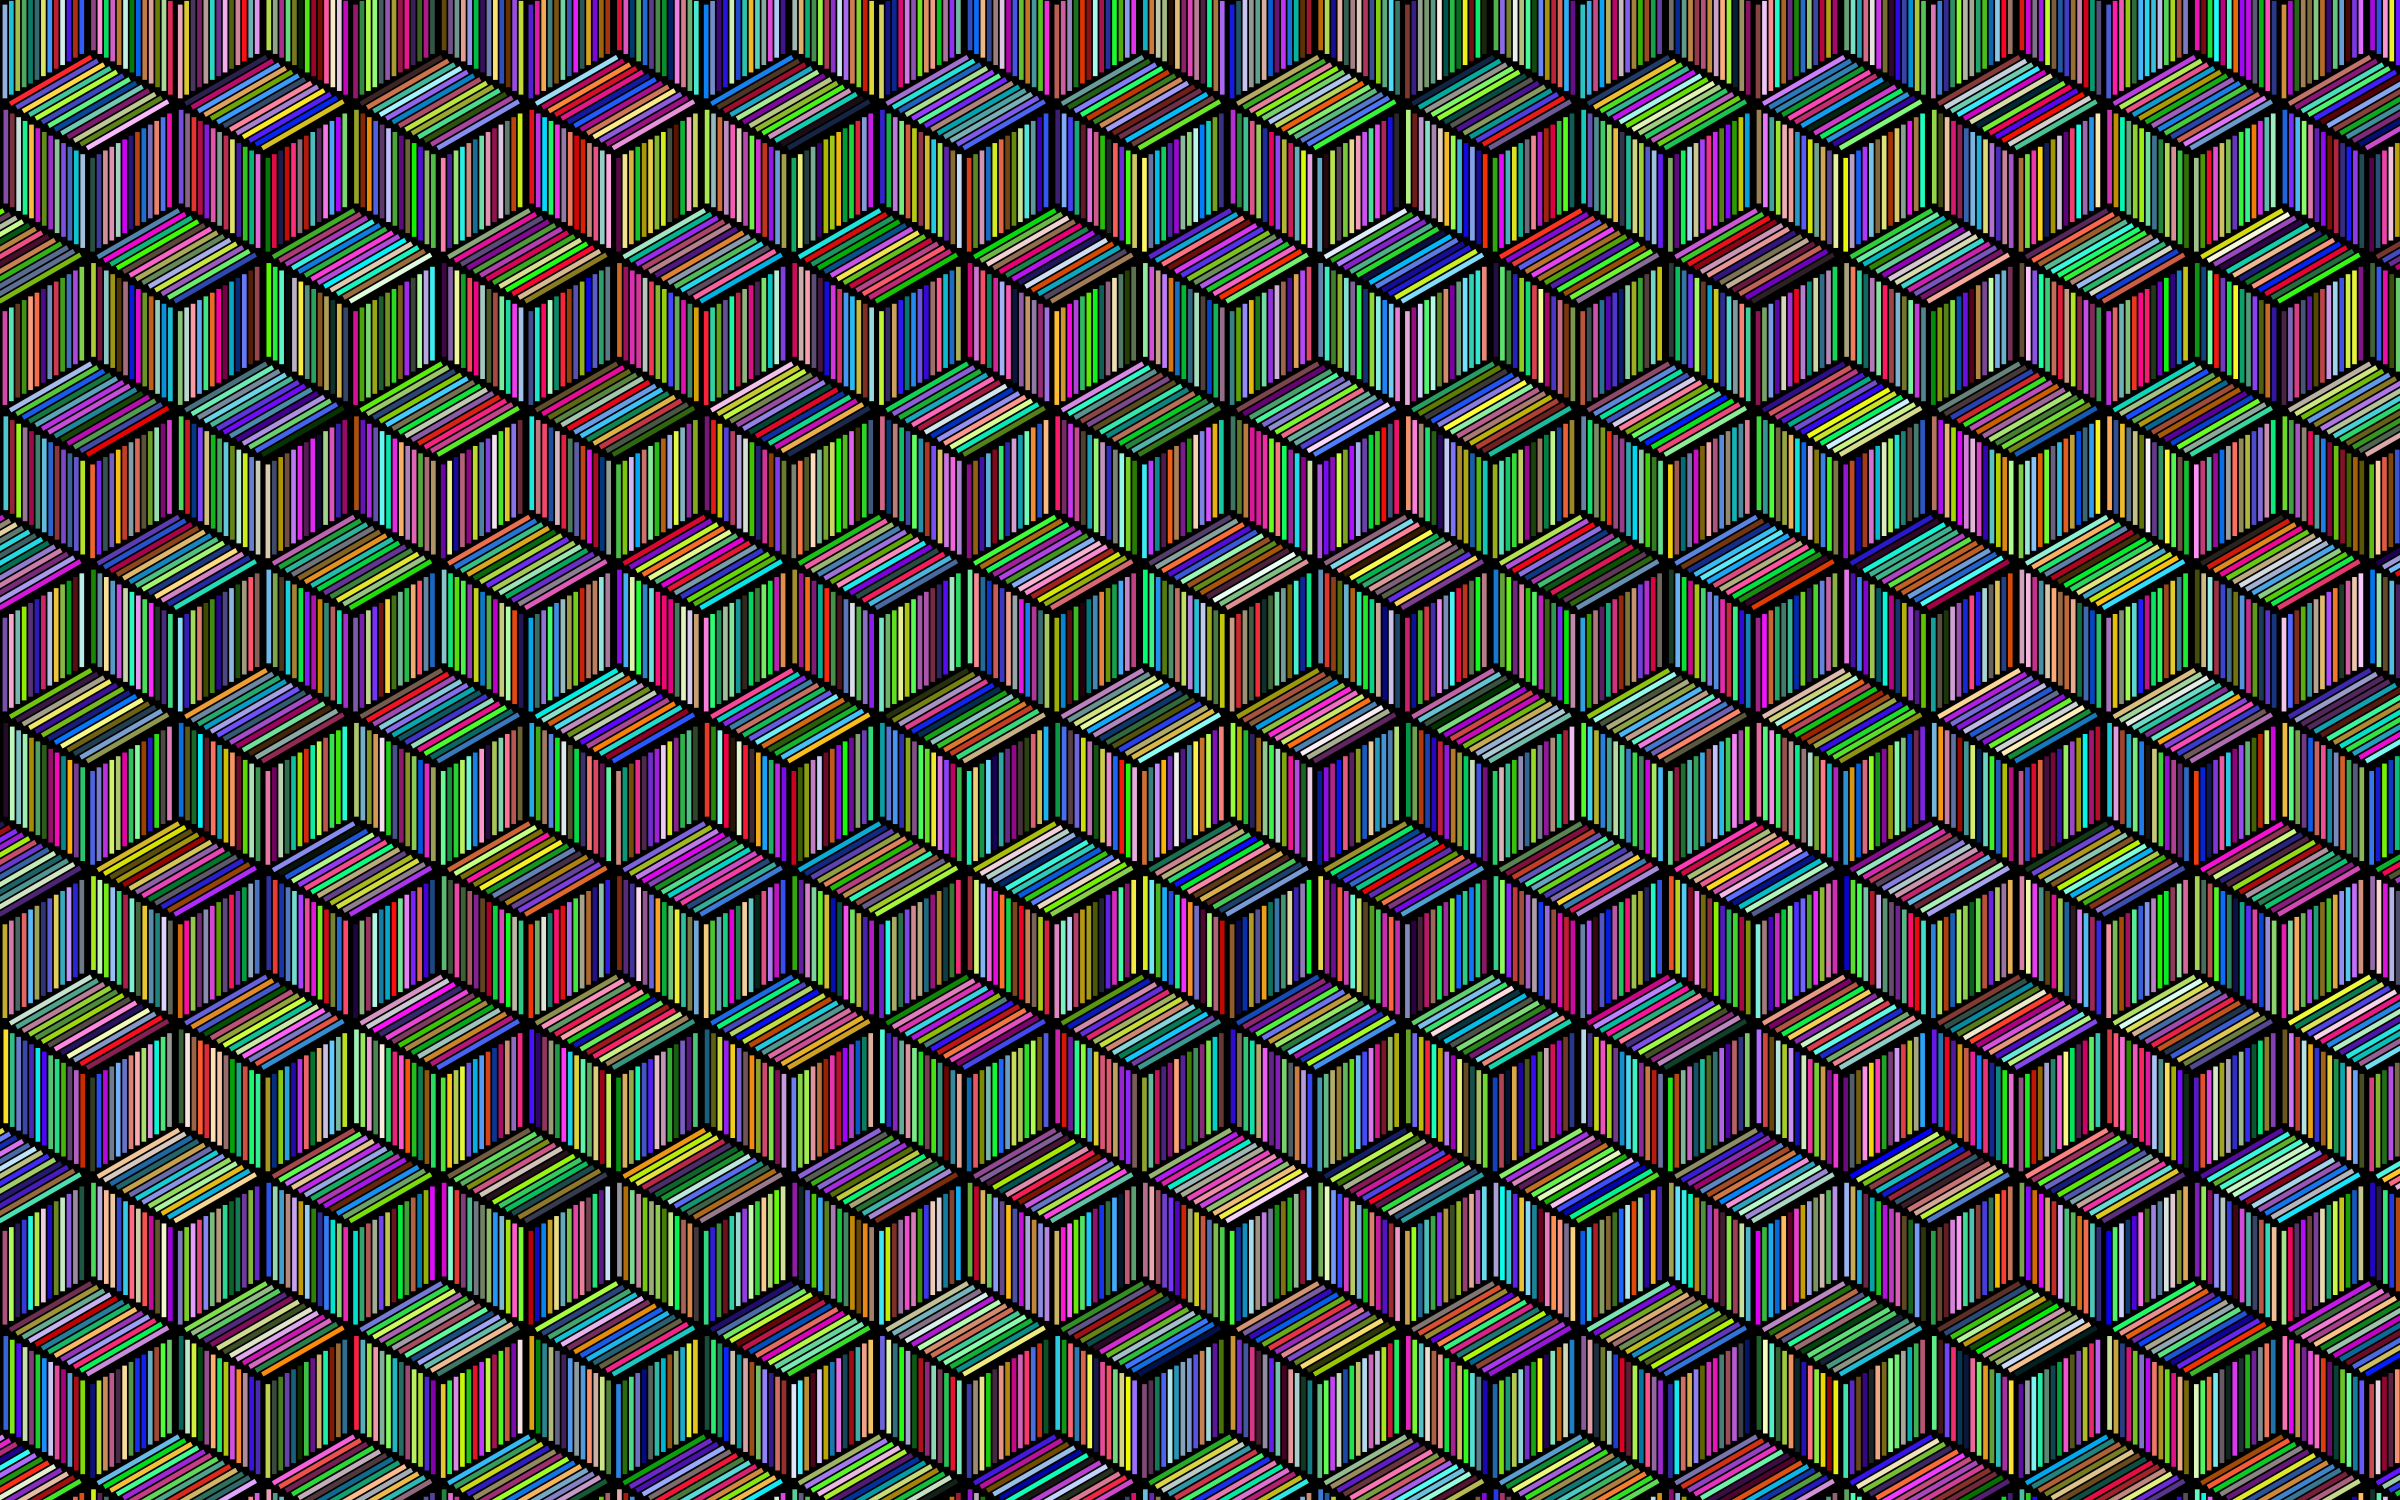 Prismatic Isometric Striped Cubes Pattern With Background by GDJ